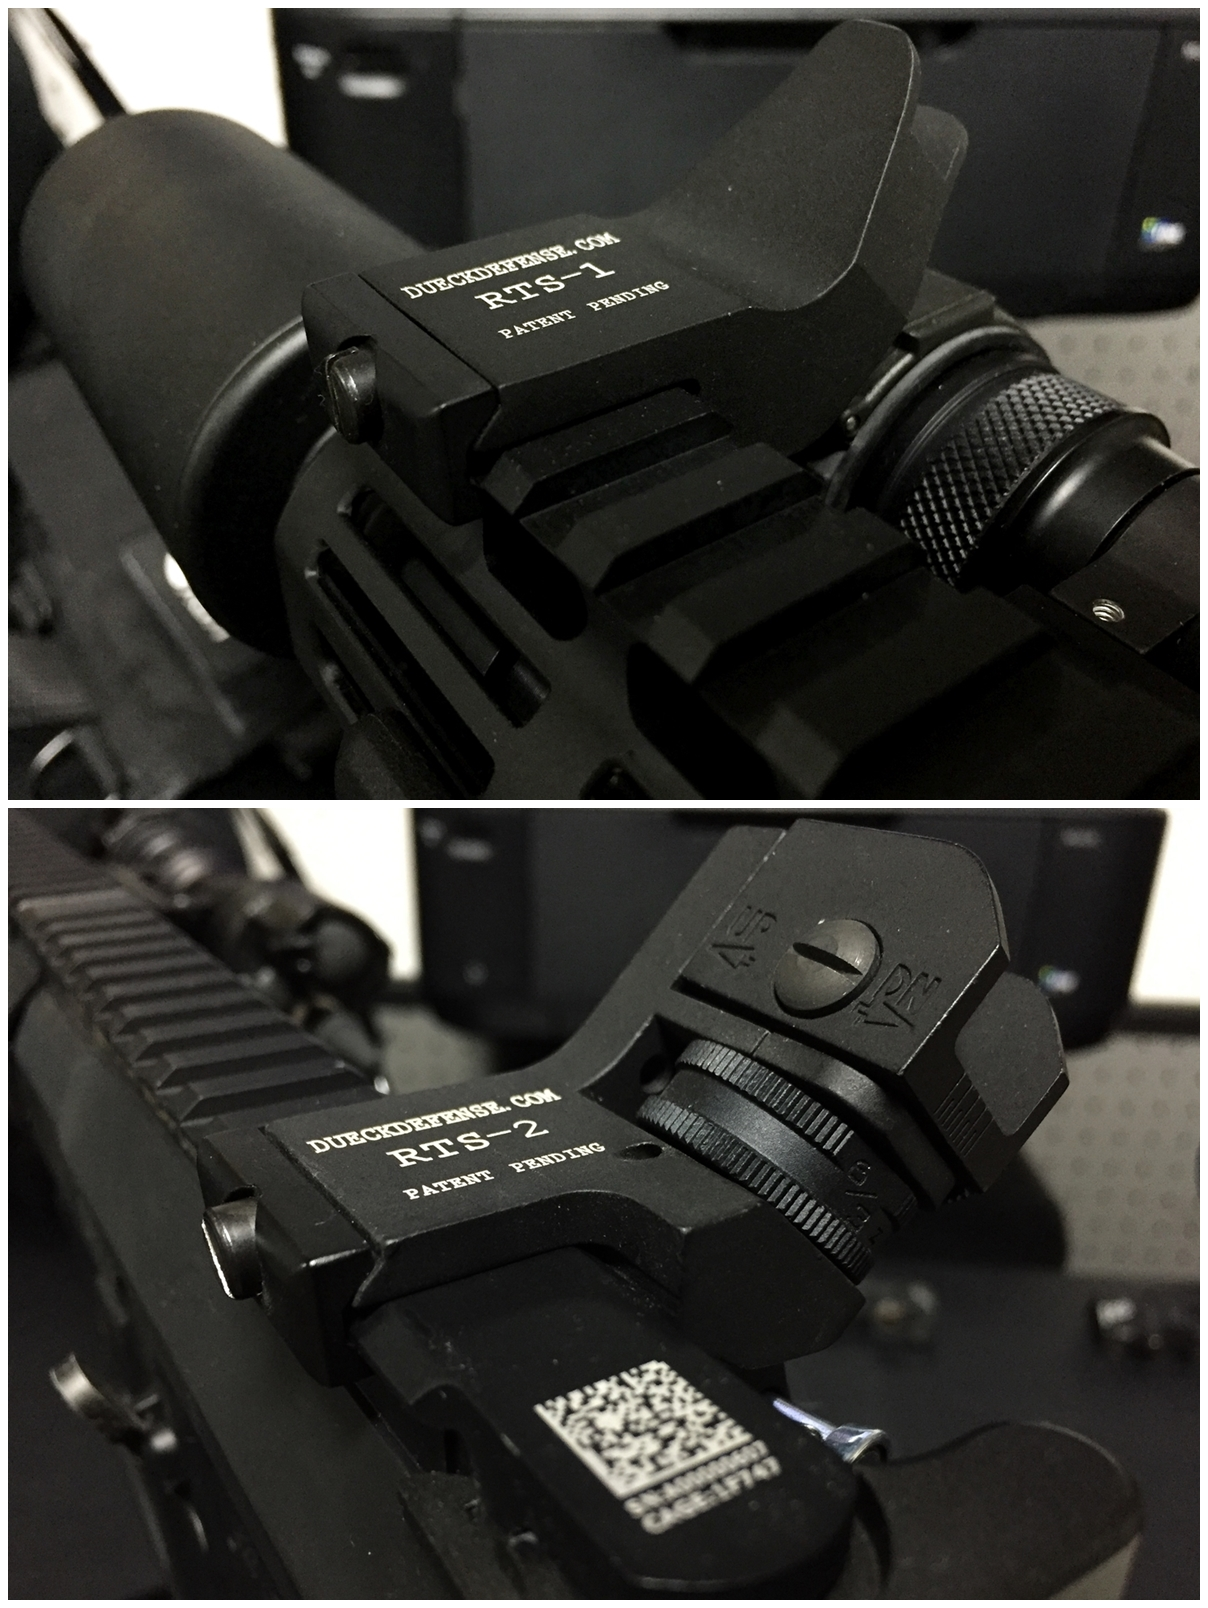 1 RAPID TRANSITION SIGHT FRONT & REAR DUECK DEFENSE TYPE ラピッドトランジションサイト オフセットサイト カスタム 取付 実物 レプリカ 比較